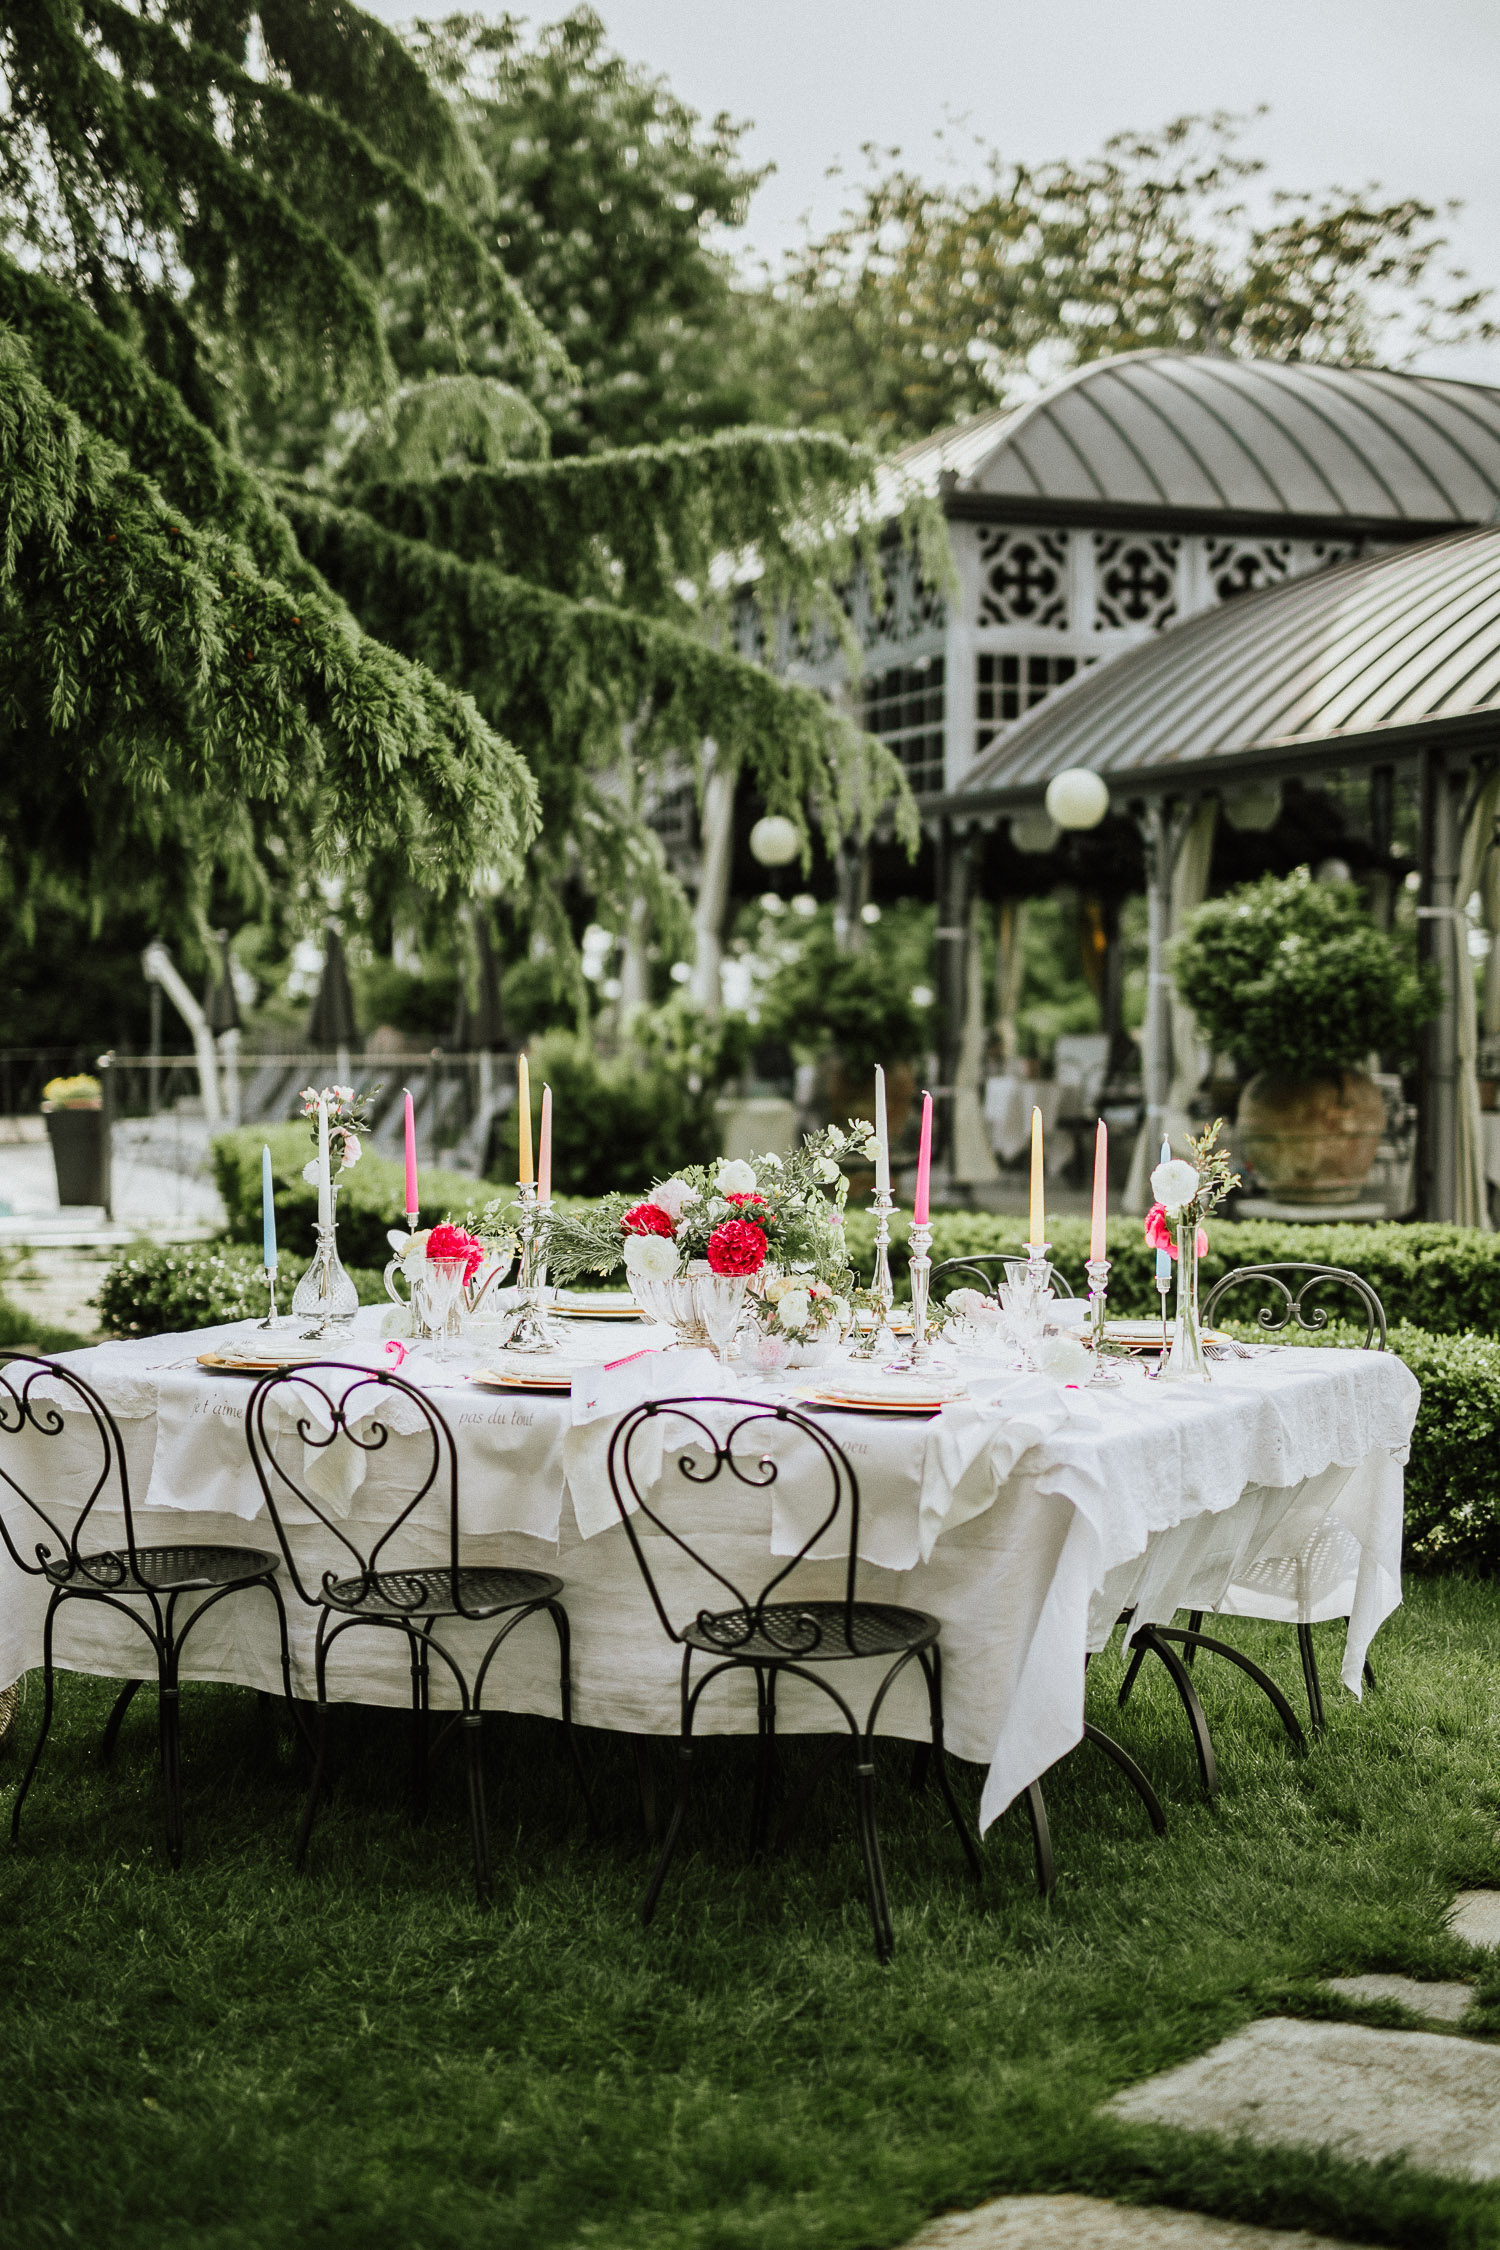 Colorful table setting with candles and rosmaery at Villa Beccaris in Monforte d'Alba